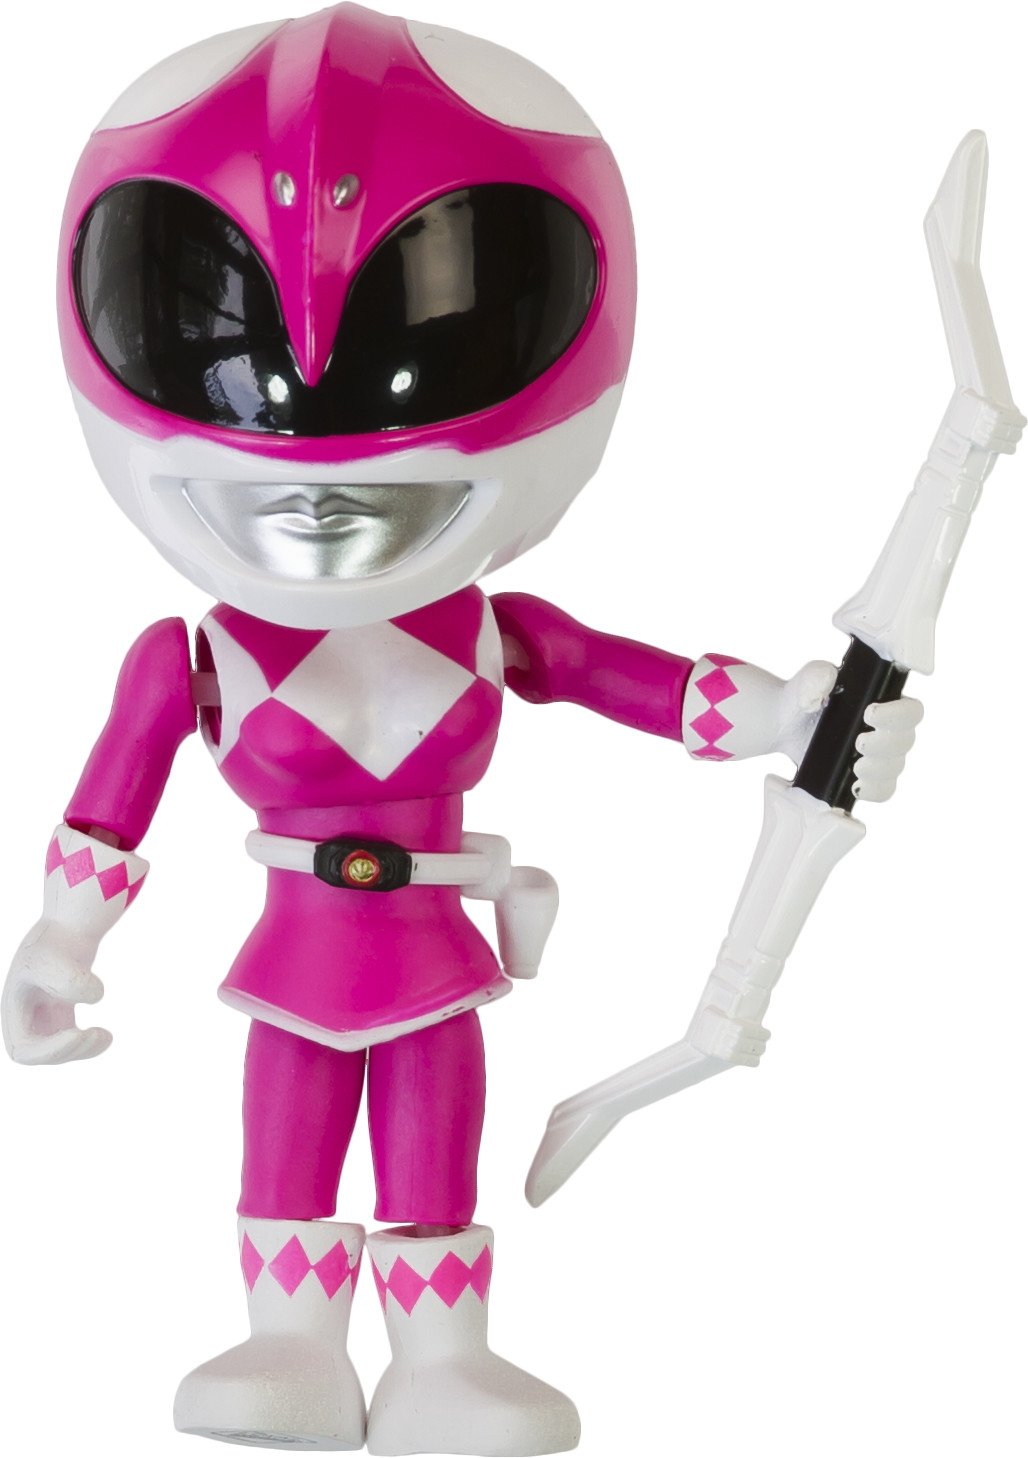 ~3.3 The Loyal Subjects Action Vinyls x Power Rangers Mini-Figure Pink Ranger